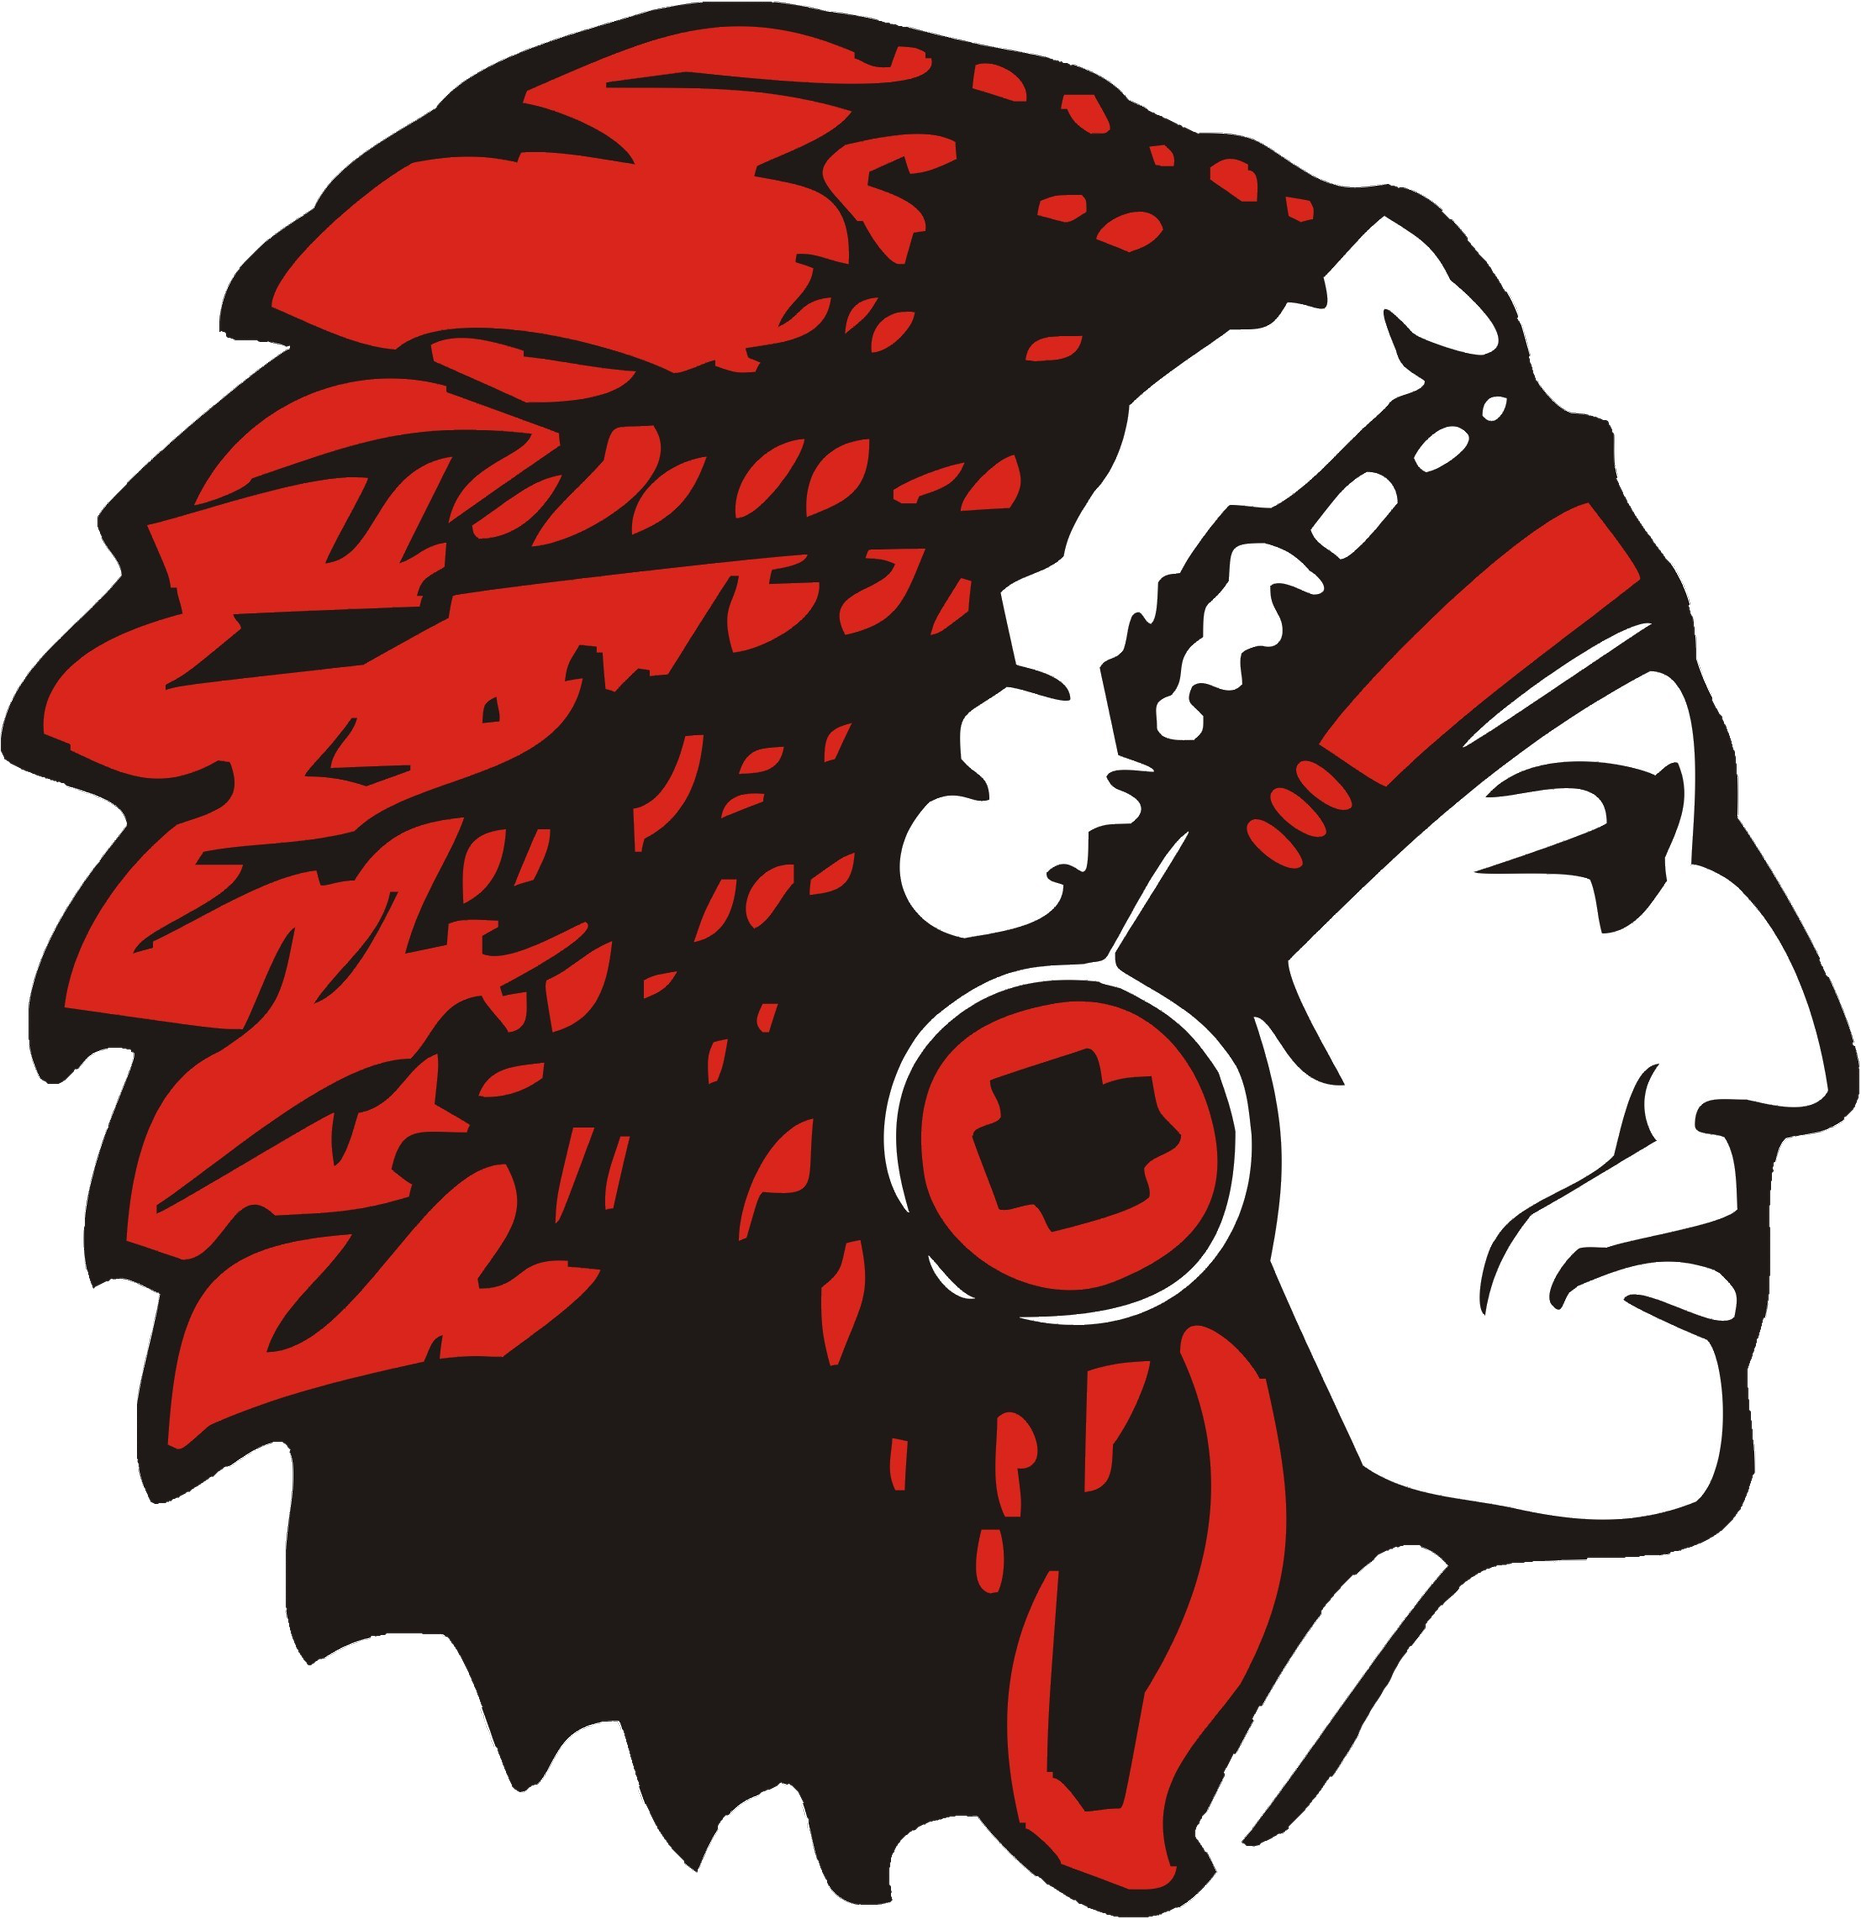 Indians clipart choctaw, Indians choctaw Transparent FREE.